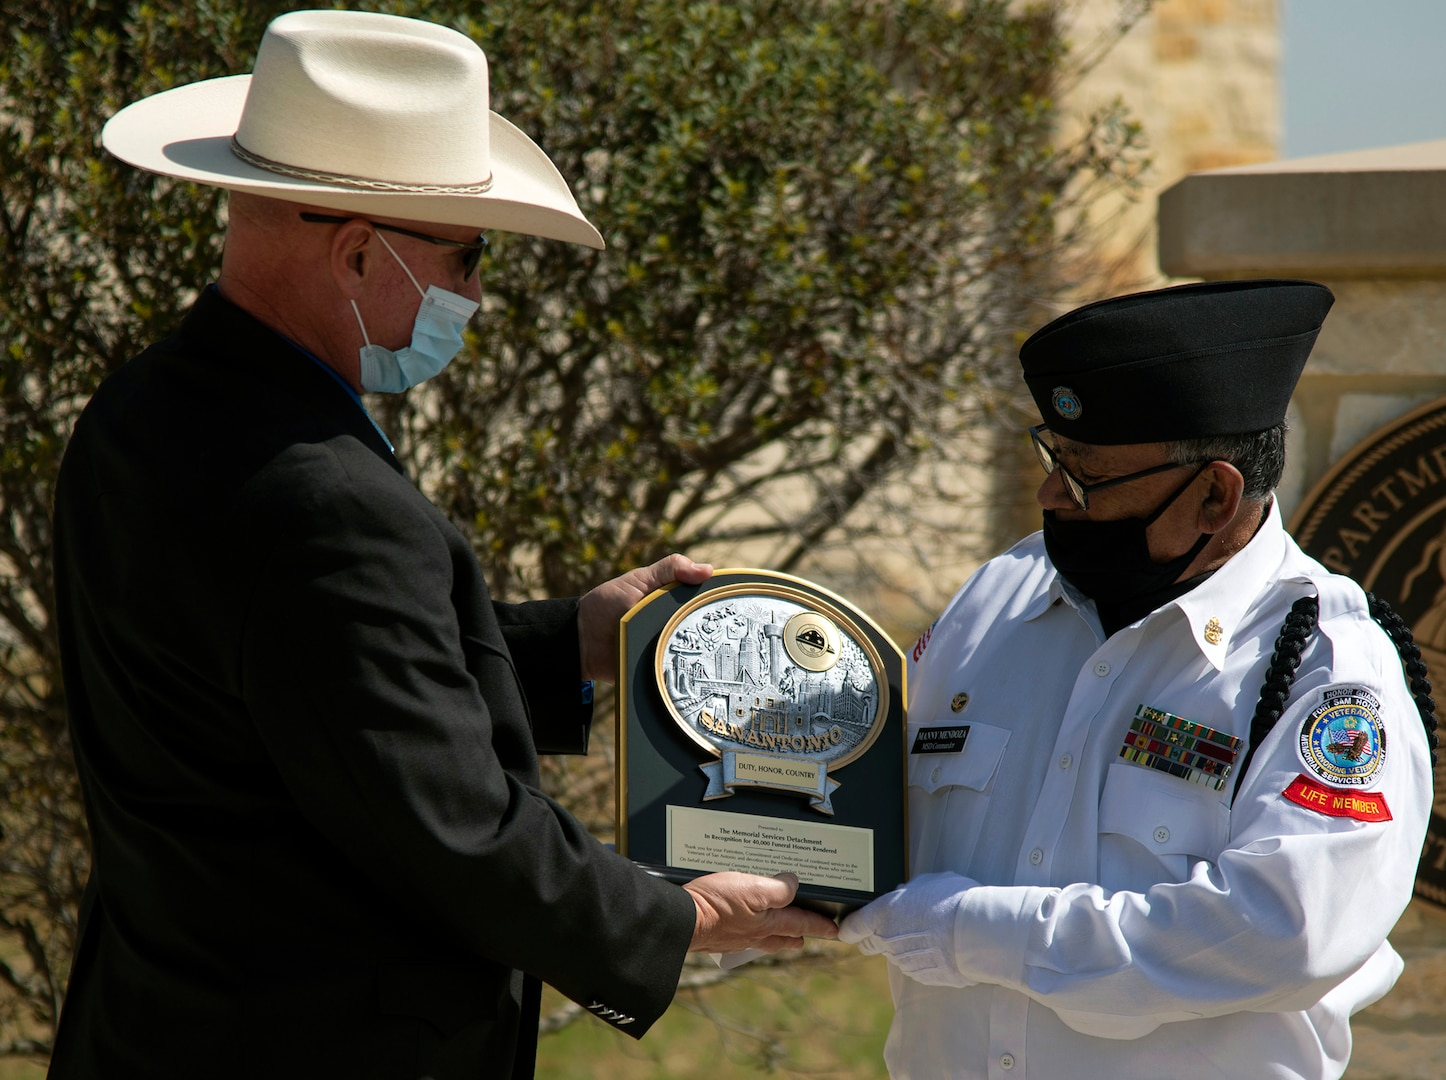 Robert C. (Bob) Winkler (left), assistant director of the U.S. Department of Veterans Affairs National Cemetery Administration Fort Sam Houston National Cemetery, presents a plaque to Manny Mendoza, Fort Sam Houston Memorial Services Detachment commander, at the Fort Sam Houston National Cemetery March 15. The plaque was given to the detachment to commemorate their 40,000th funeral service.